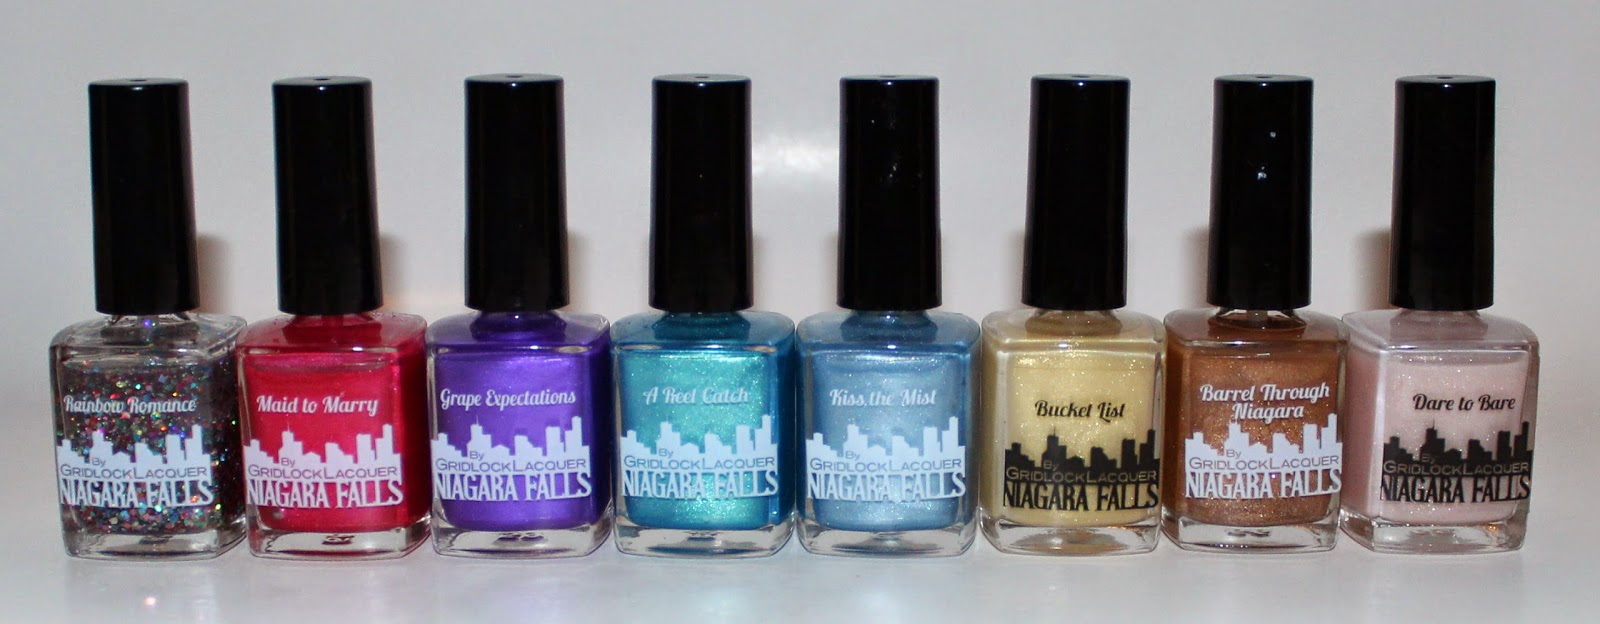 Gridlock Lacquer Niagara Falls Collection